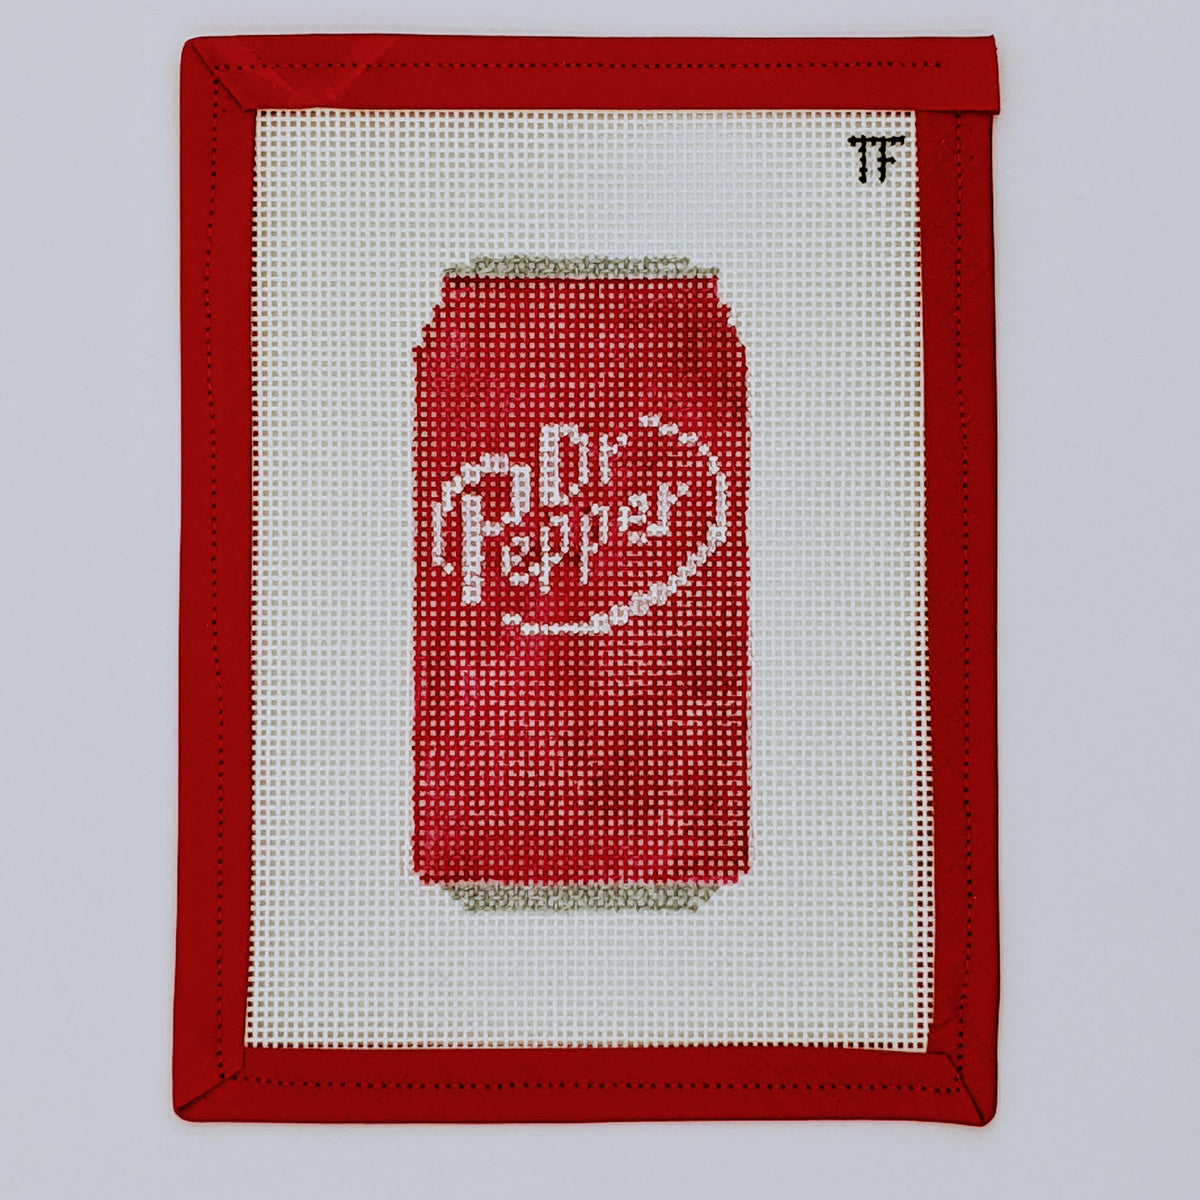 Dr. Pepper soda can ornament